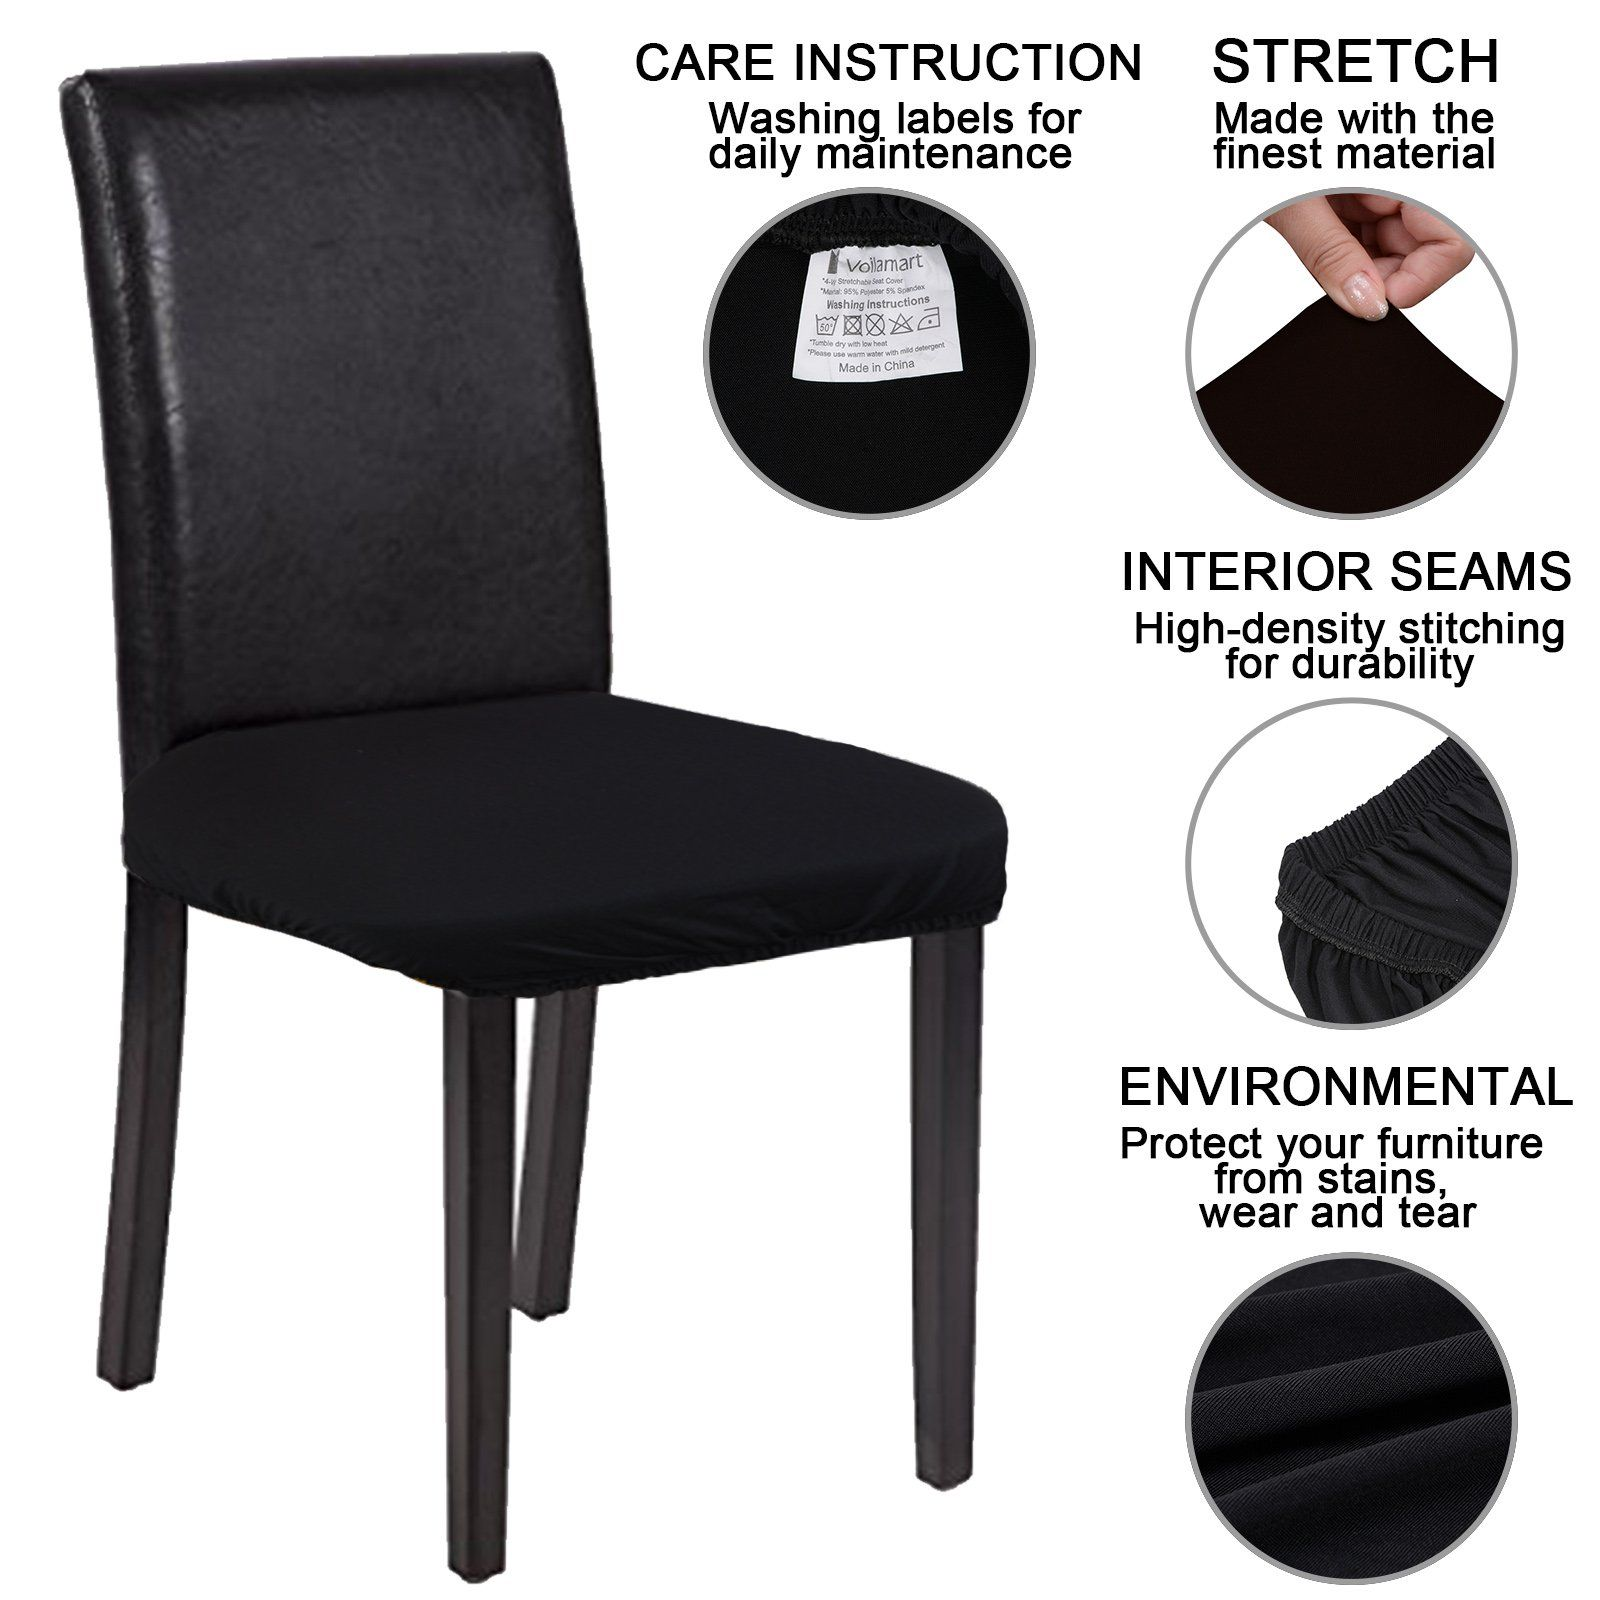 Voilamart Chair Seat Covers Stretchable Dining Chair Cover Slipcovers Soft Chair Protectors Dining Seat Covers For Chairs Office Chair Cover Best Office Chair